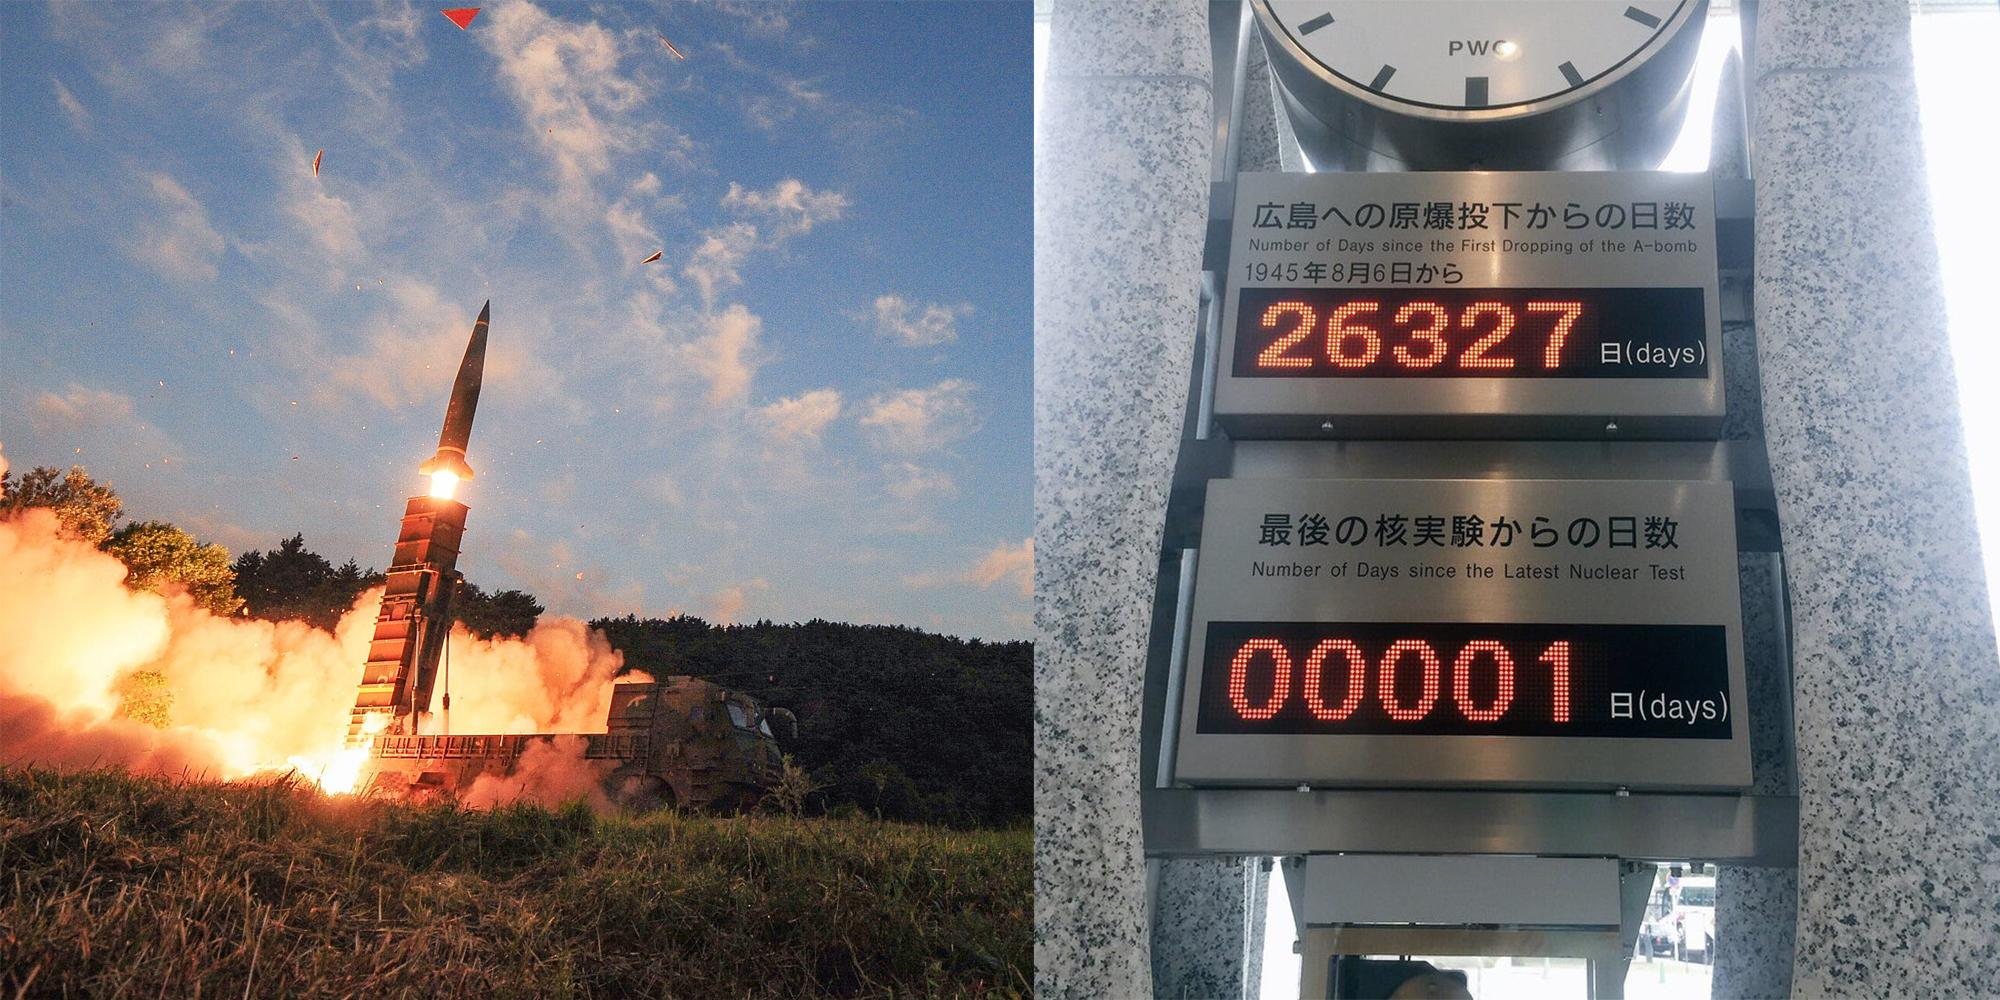 These two clocks in Hiroshima reveal the chilling reality of nuclear war